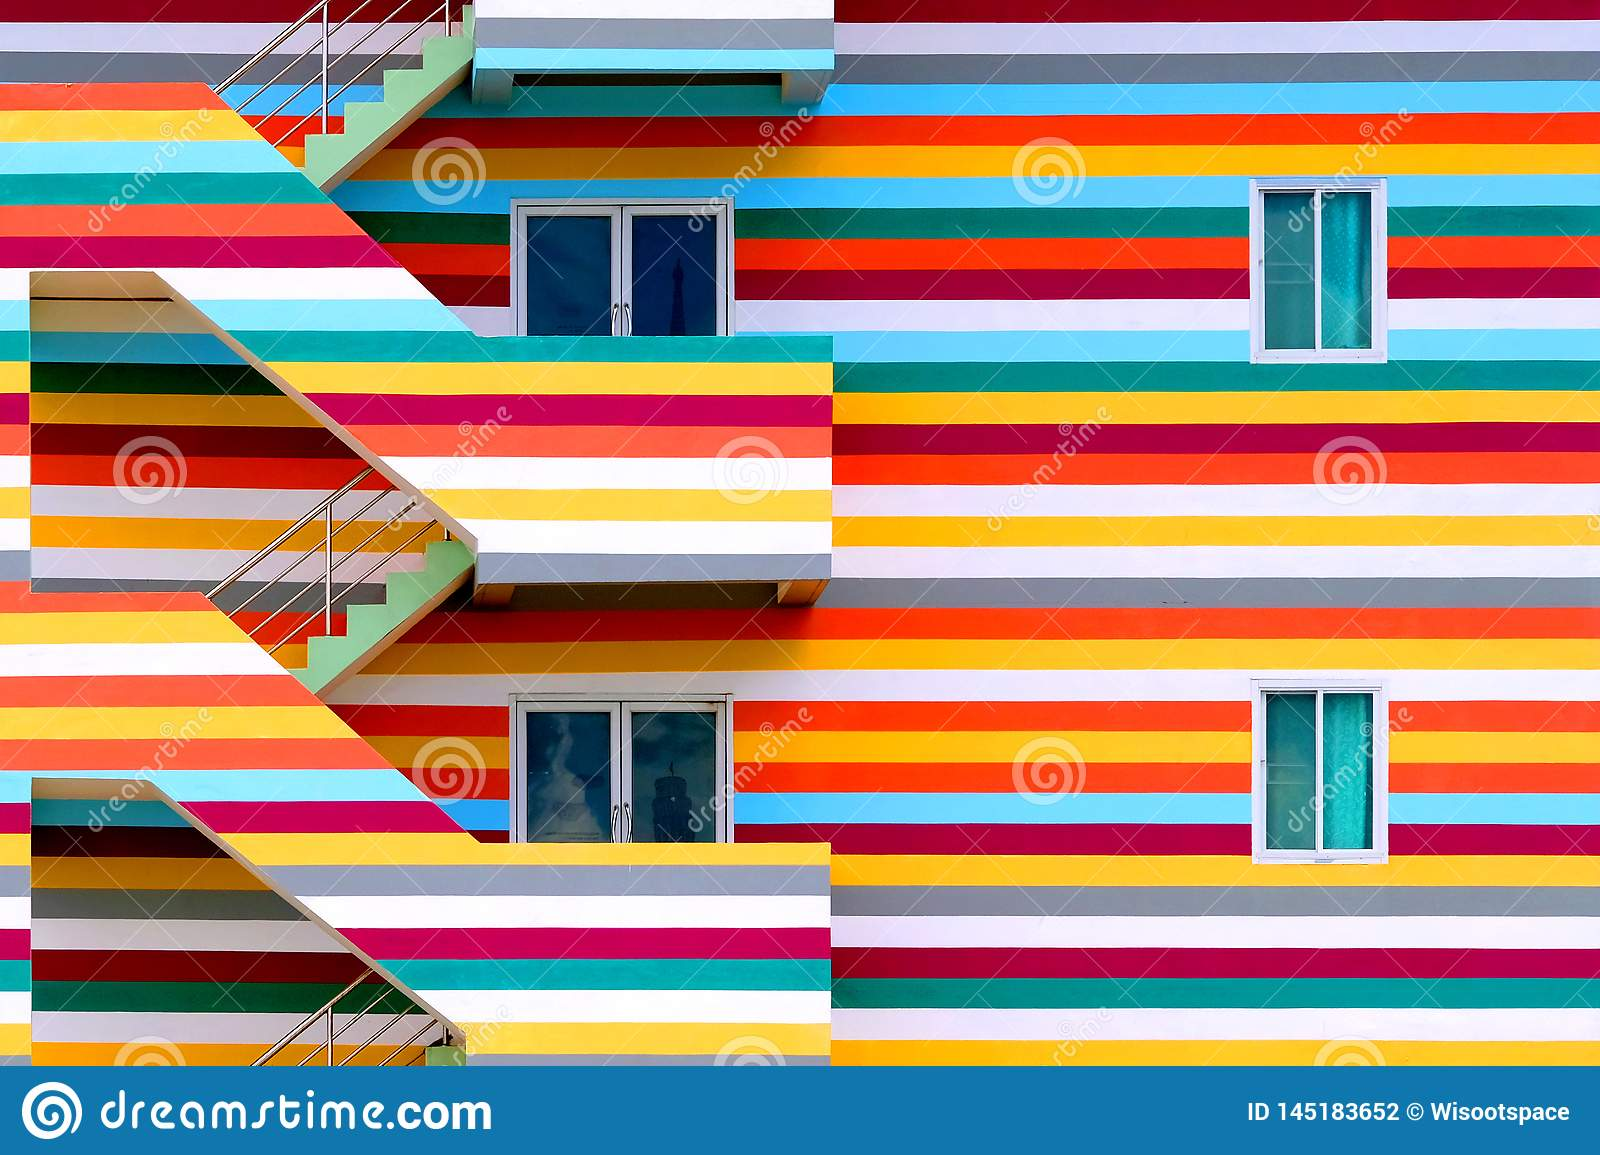 Background walls of bright colored buildings with fire escape / bright colored buildings